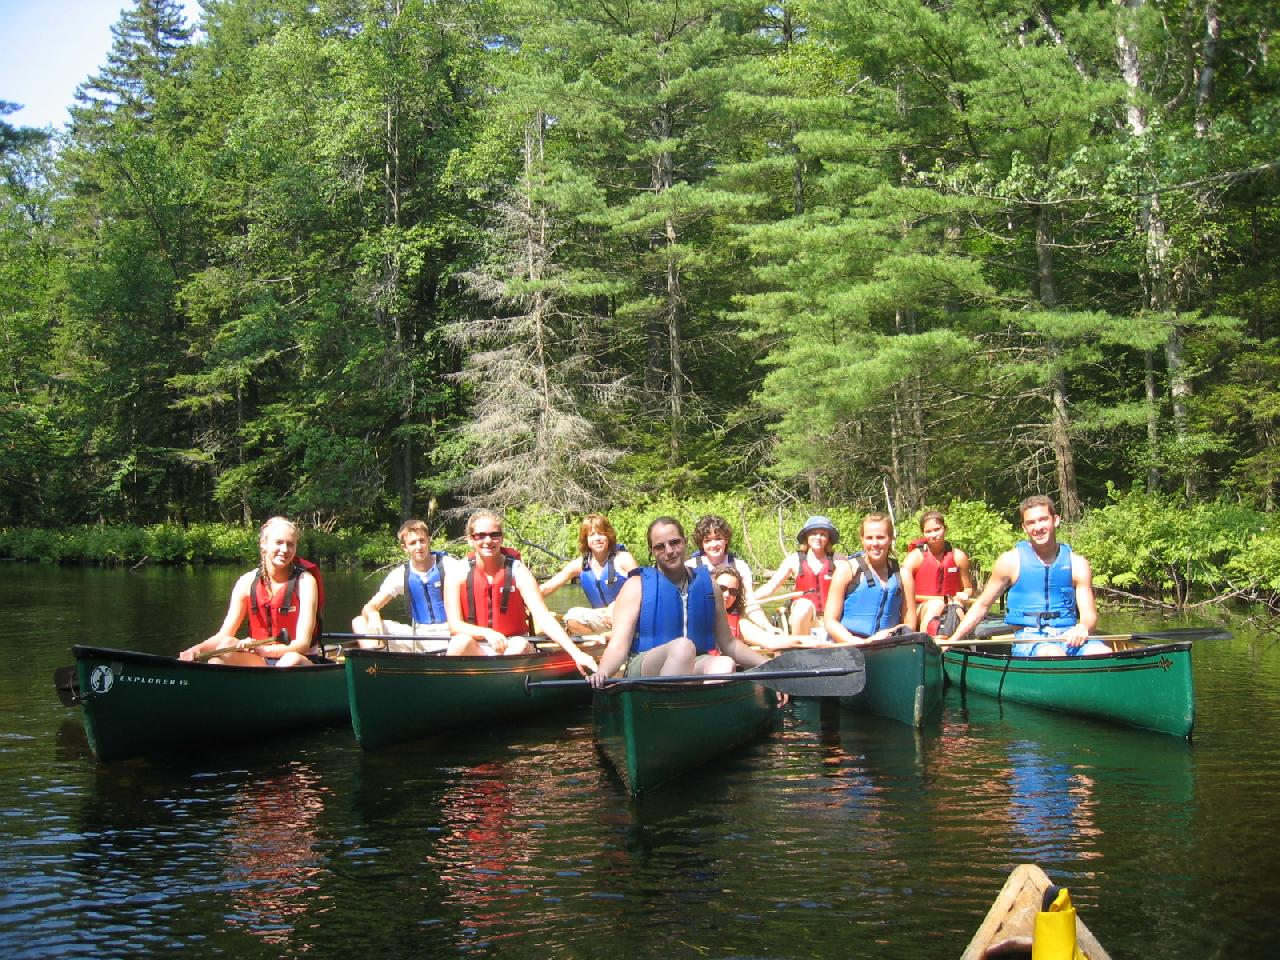 Students posing for photograph in kayaks